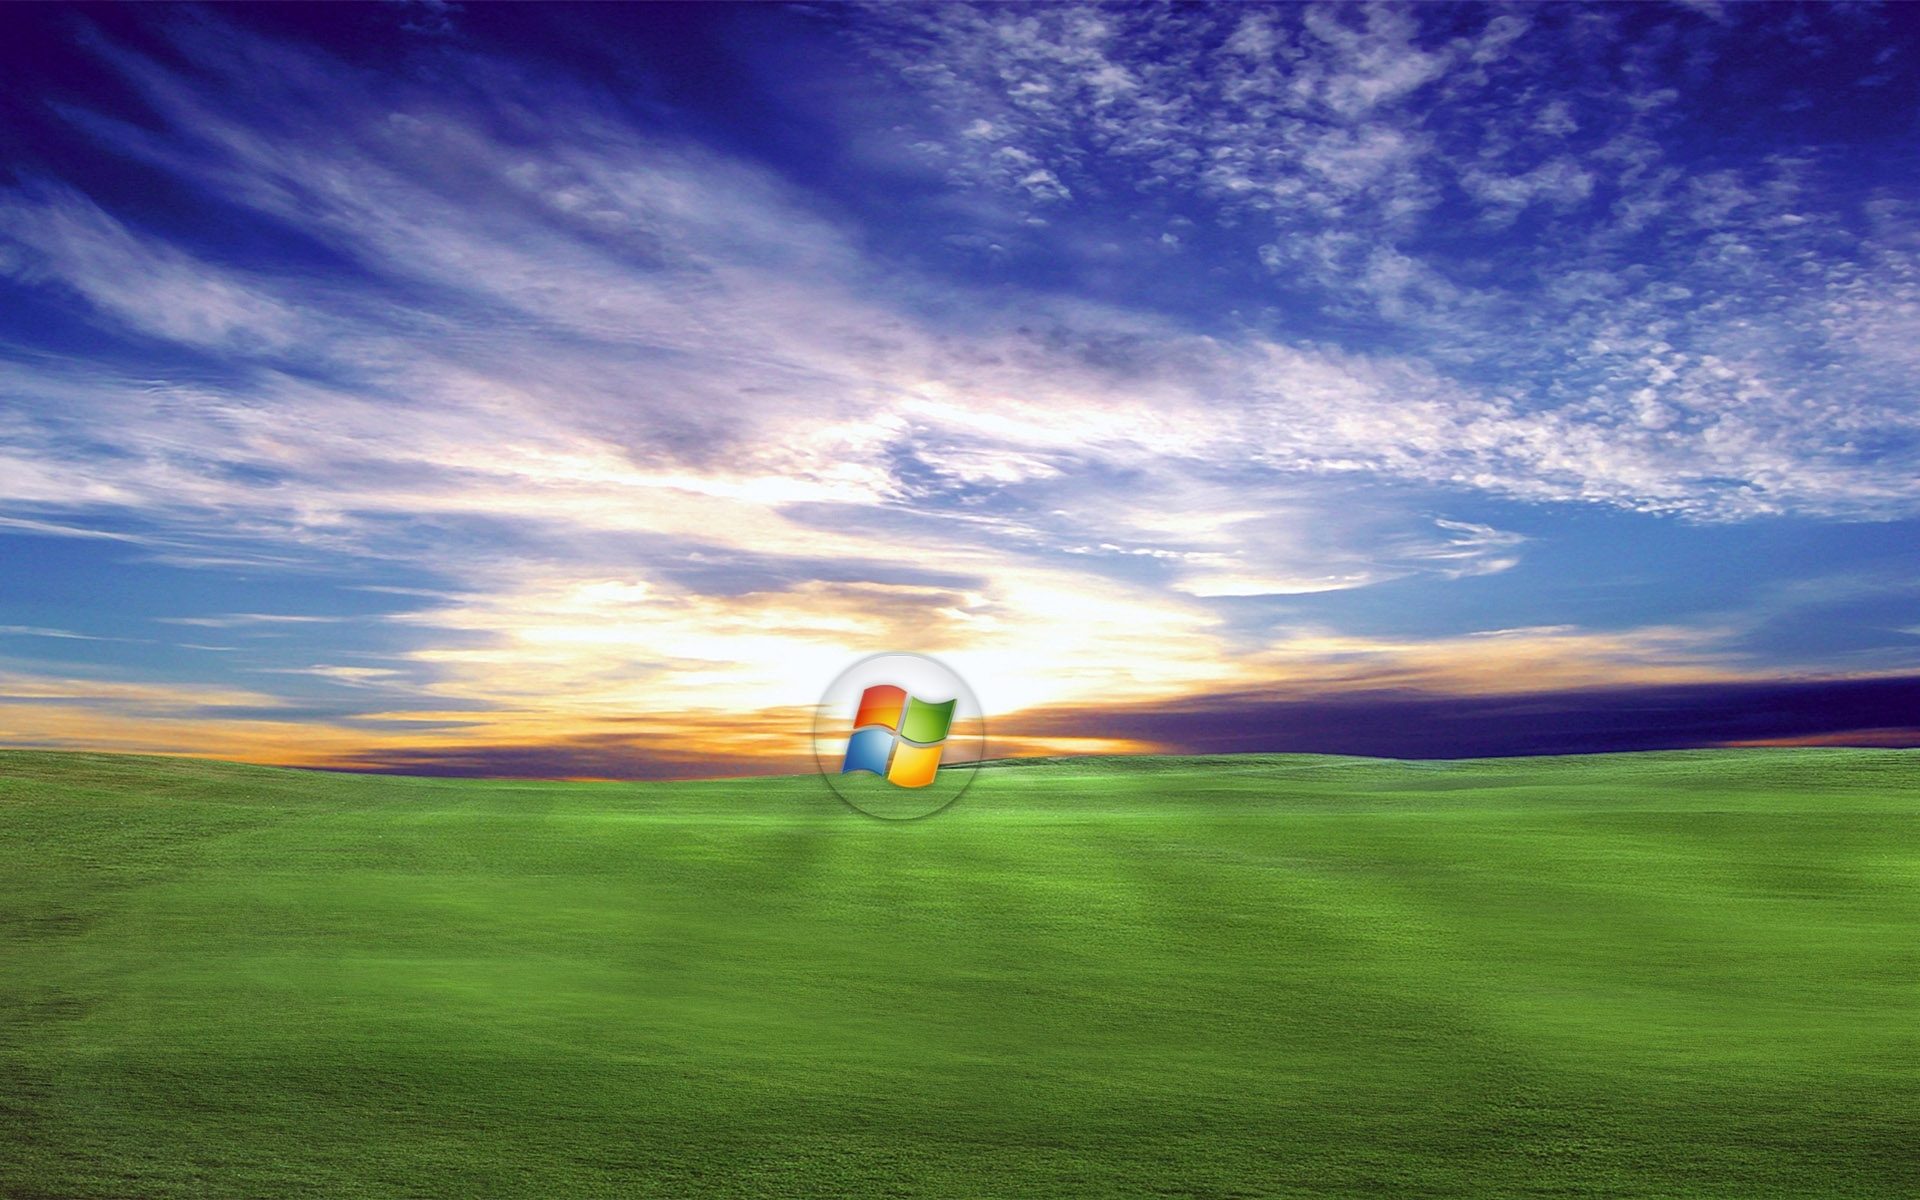 10 new hd windows xp wallpaper full hd 1920×1080 for pc background